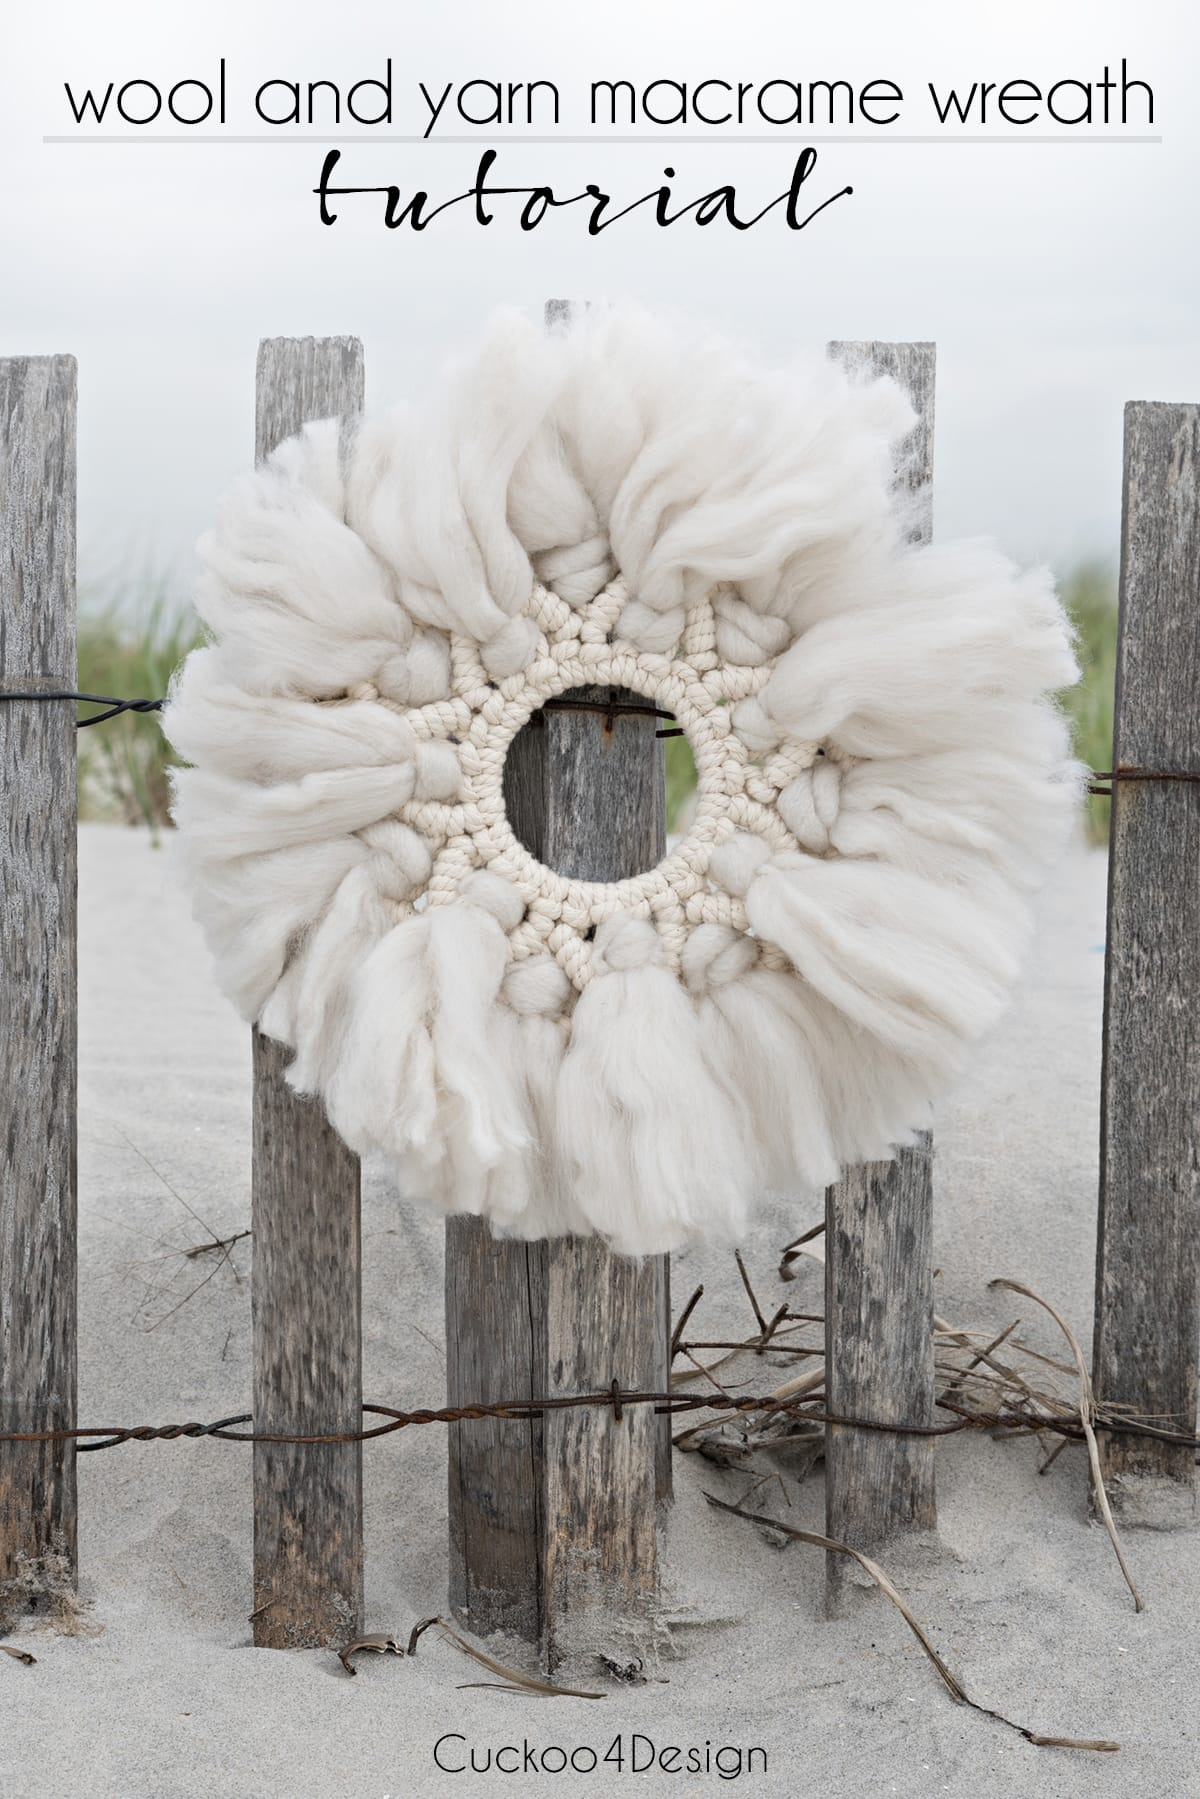 wool and yarn macrame wreath tutorial with video instructions